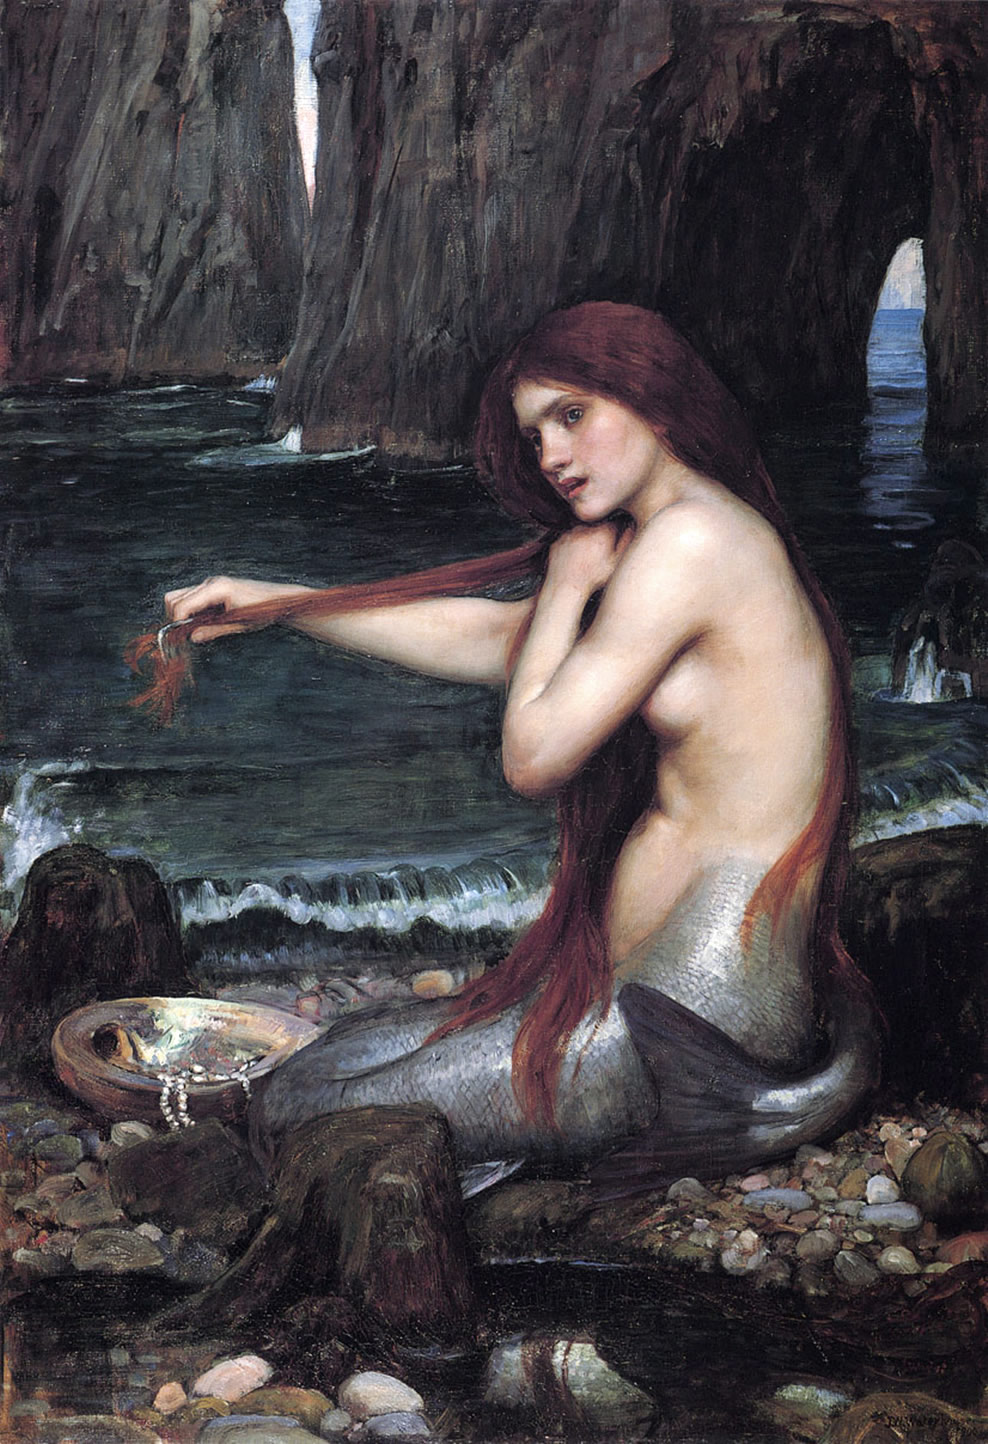 http://upload.wikimedia.org/wikipedia/commons/2/2a/Waterhouse_a_mermaid.jpg?uselang=es